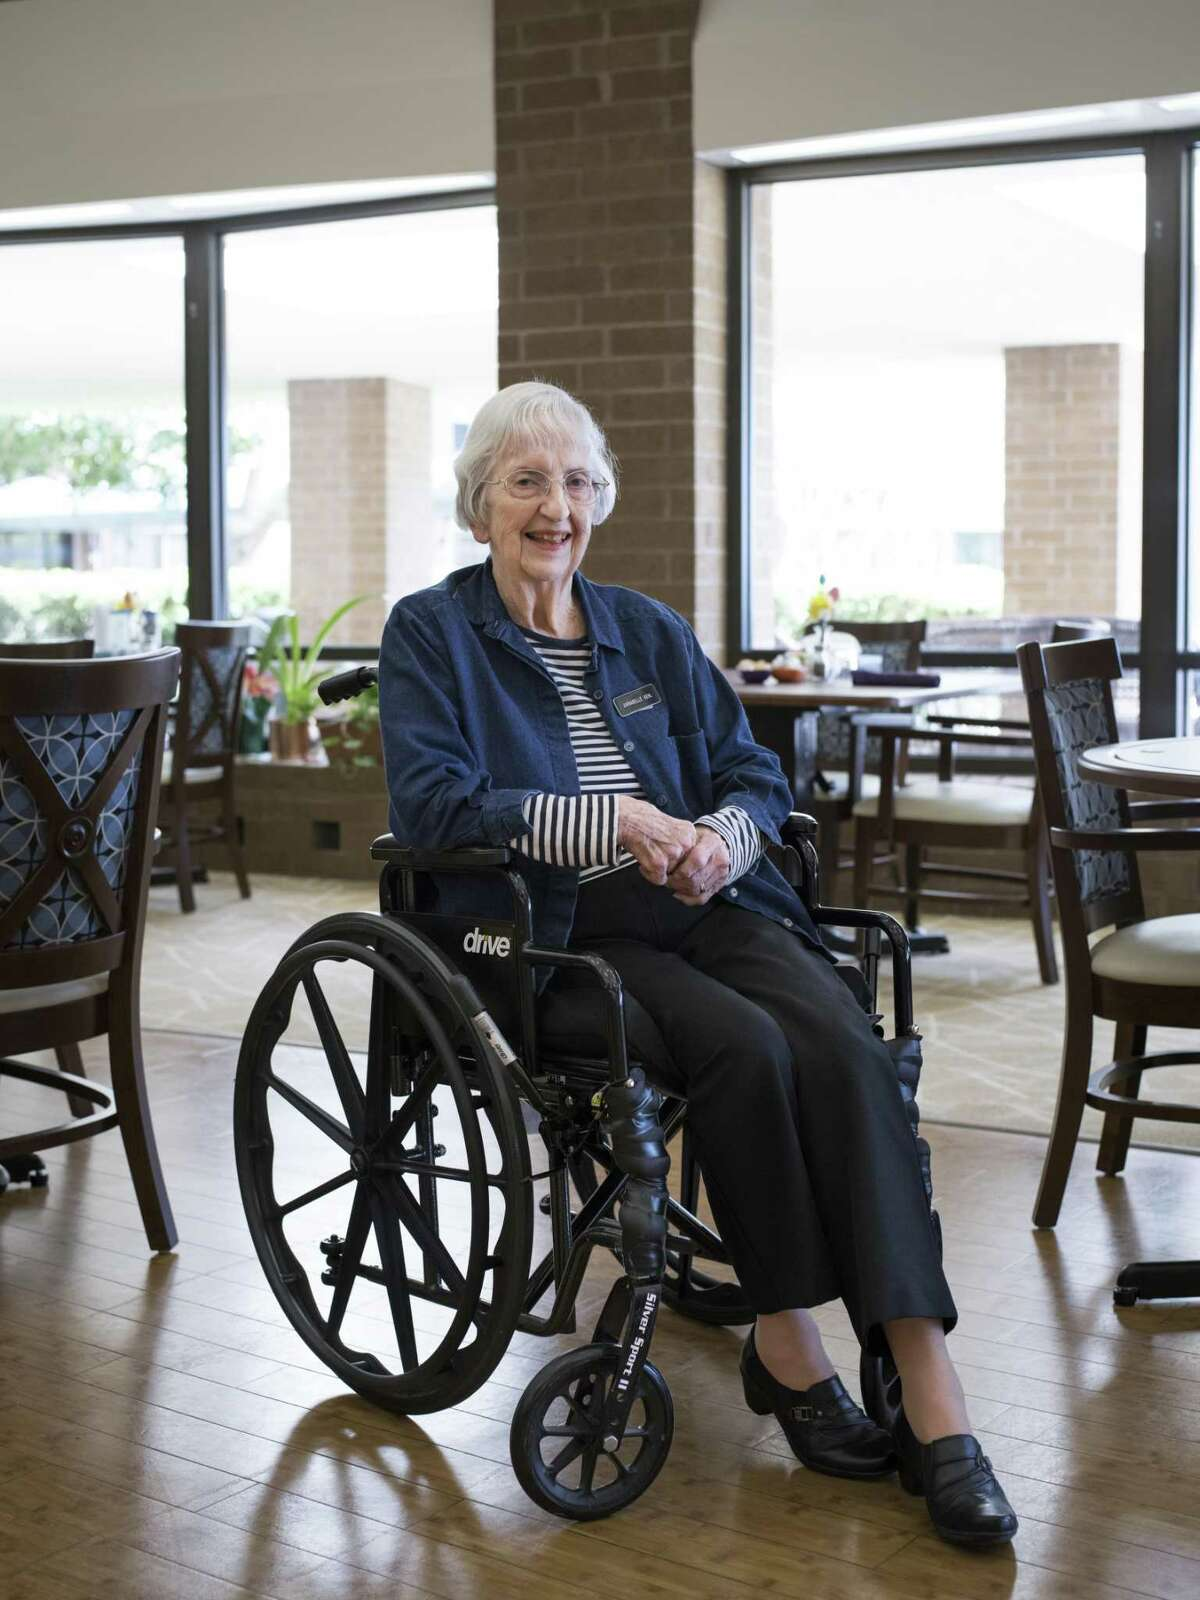 Annabelle Kehl, 94, a resident at Blue Skies of Texas since 1987, a retirement community outside of San Antonio, Texas that includes a nursing home, poses for a portrait in the dining room on Thursday, March 23, 2017. The majority of residents at Blue Skies are retired military. A proposal in the Texas legislature pushed by Sen. Juan Hinojosa, D-McAllen, would impose a fee on nursing home resident beds, including those which are private-pay. Companies such as Blue Skies of Texas would be forced to pay this fee, but are not convinced that they will be reimbursed by this new legislation.